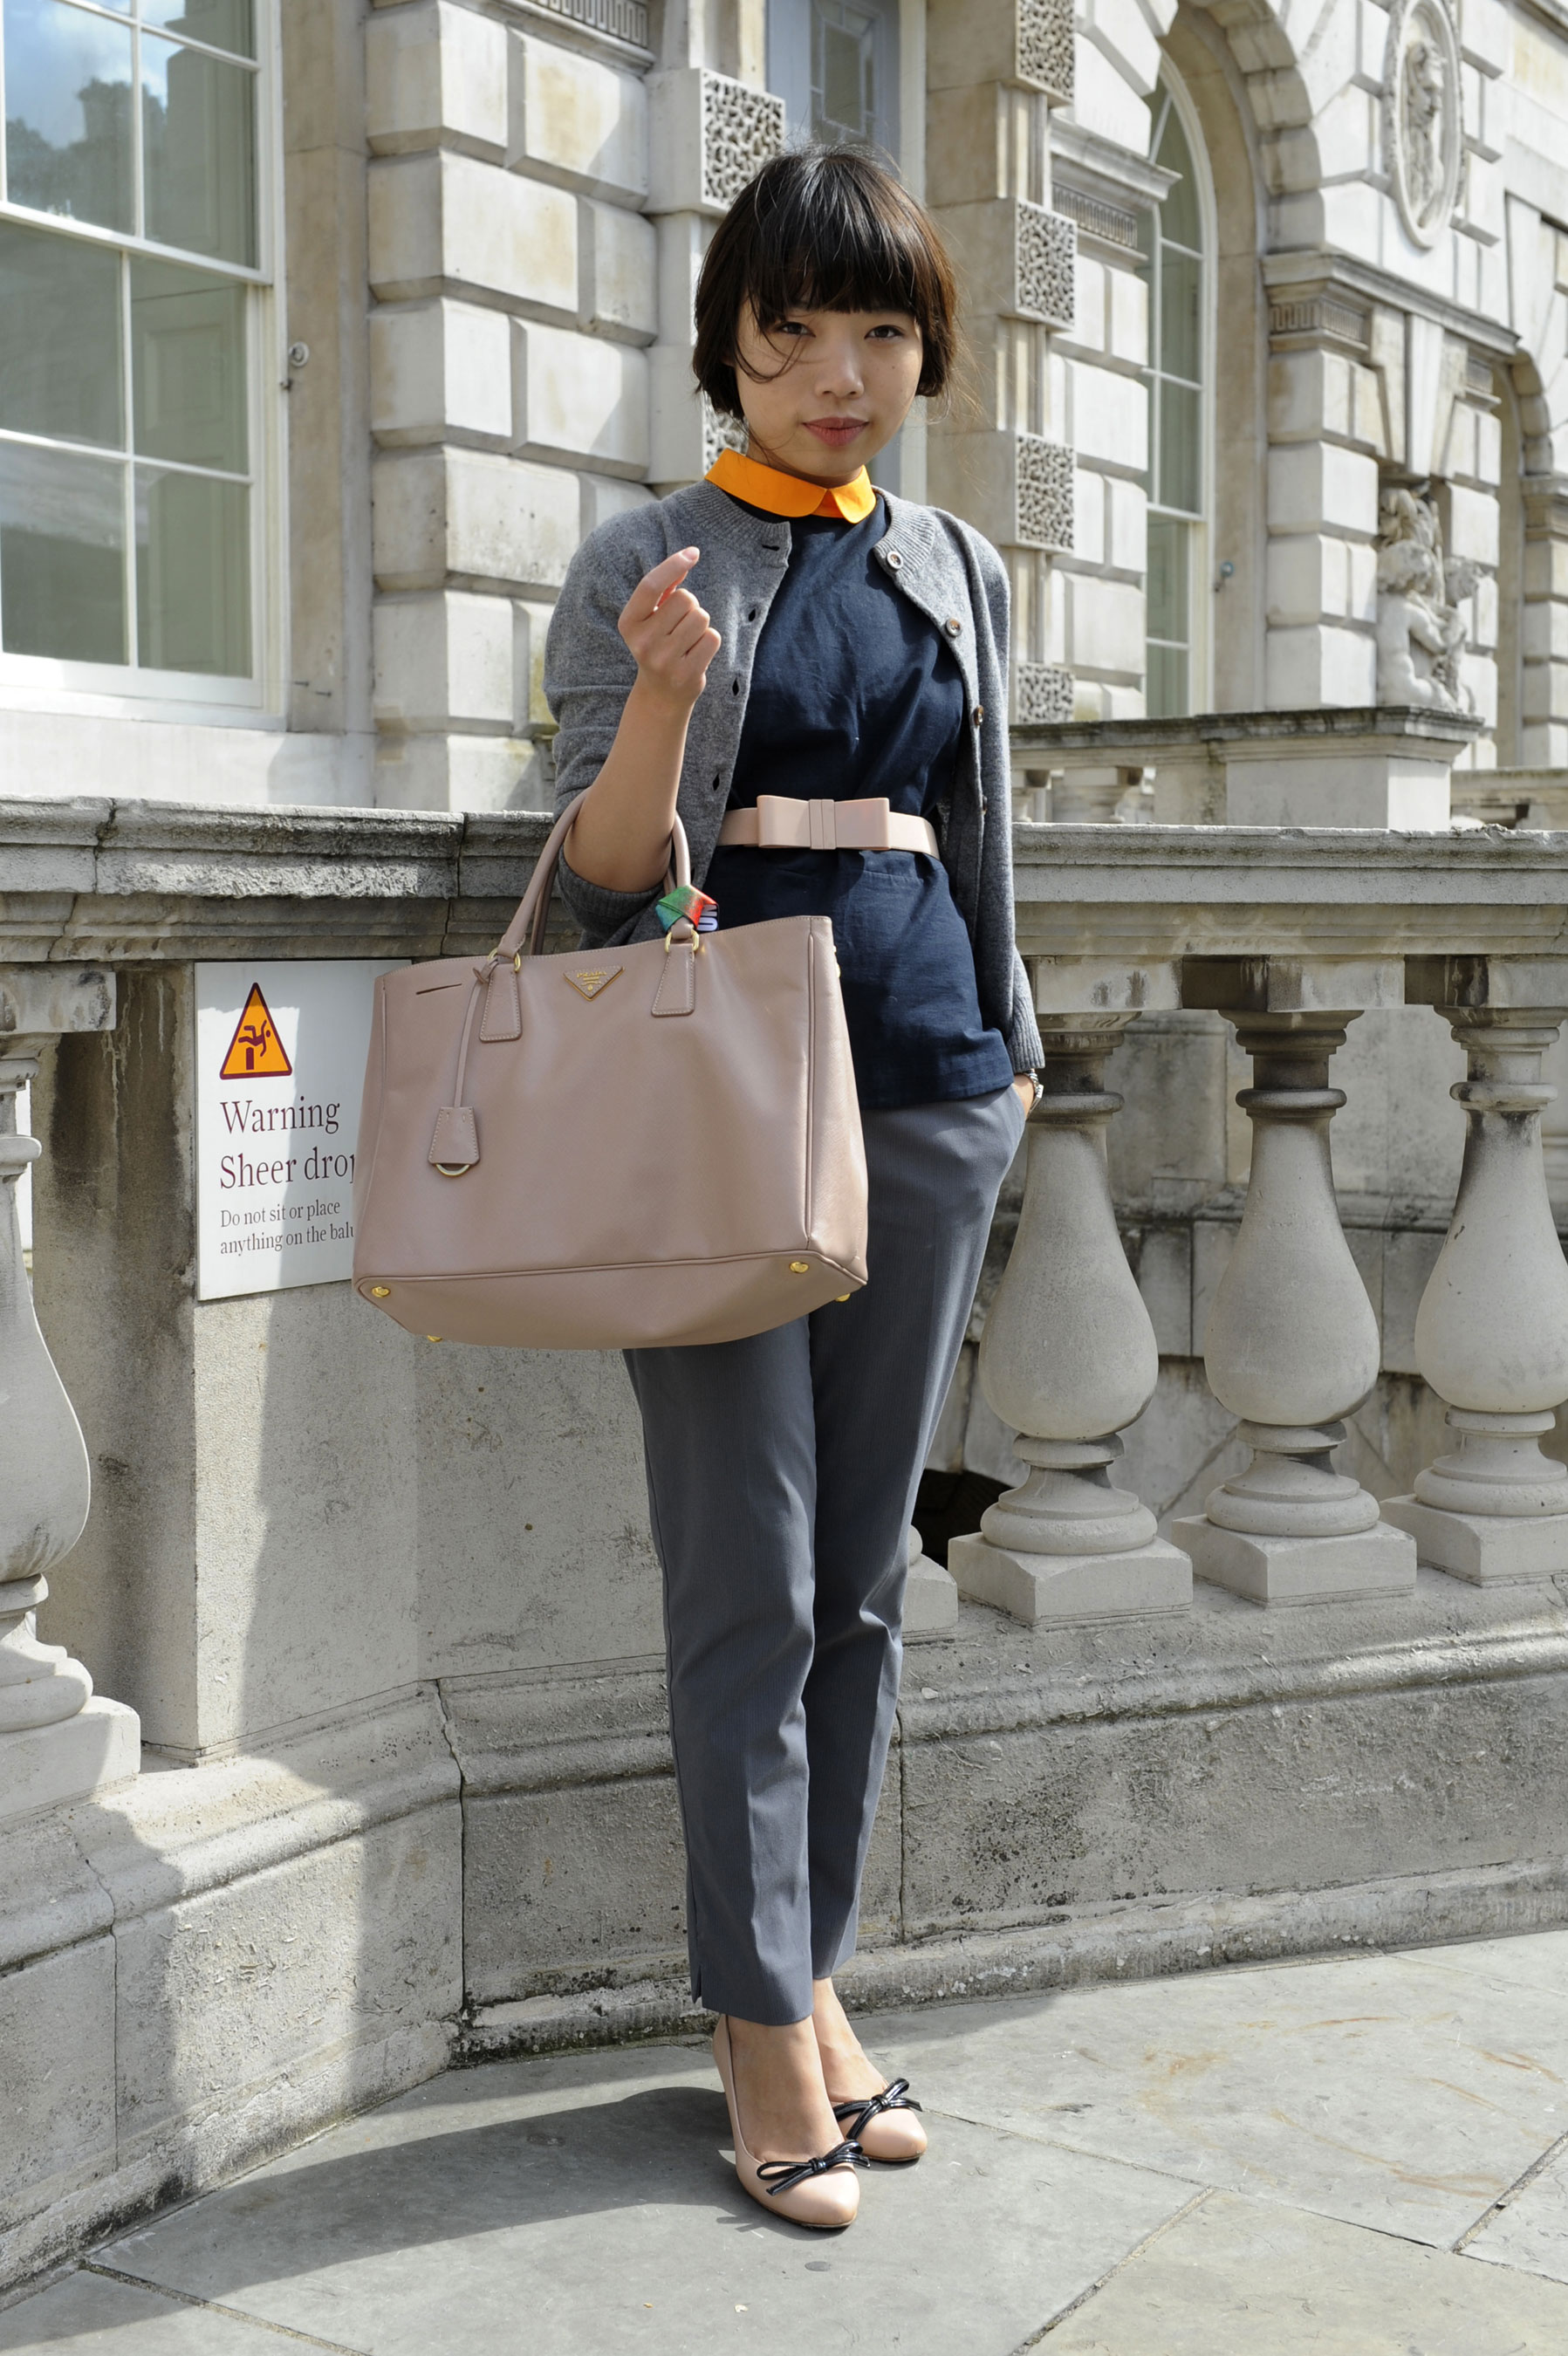 The slick orange collar injects a quirkier vibe to this styler's prim and proper getup.